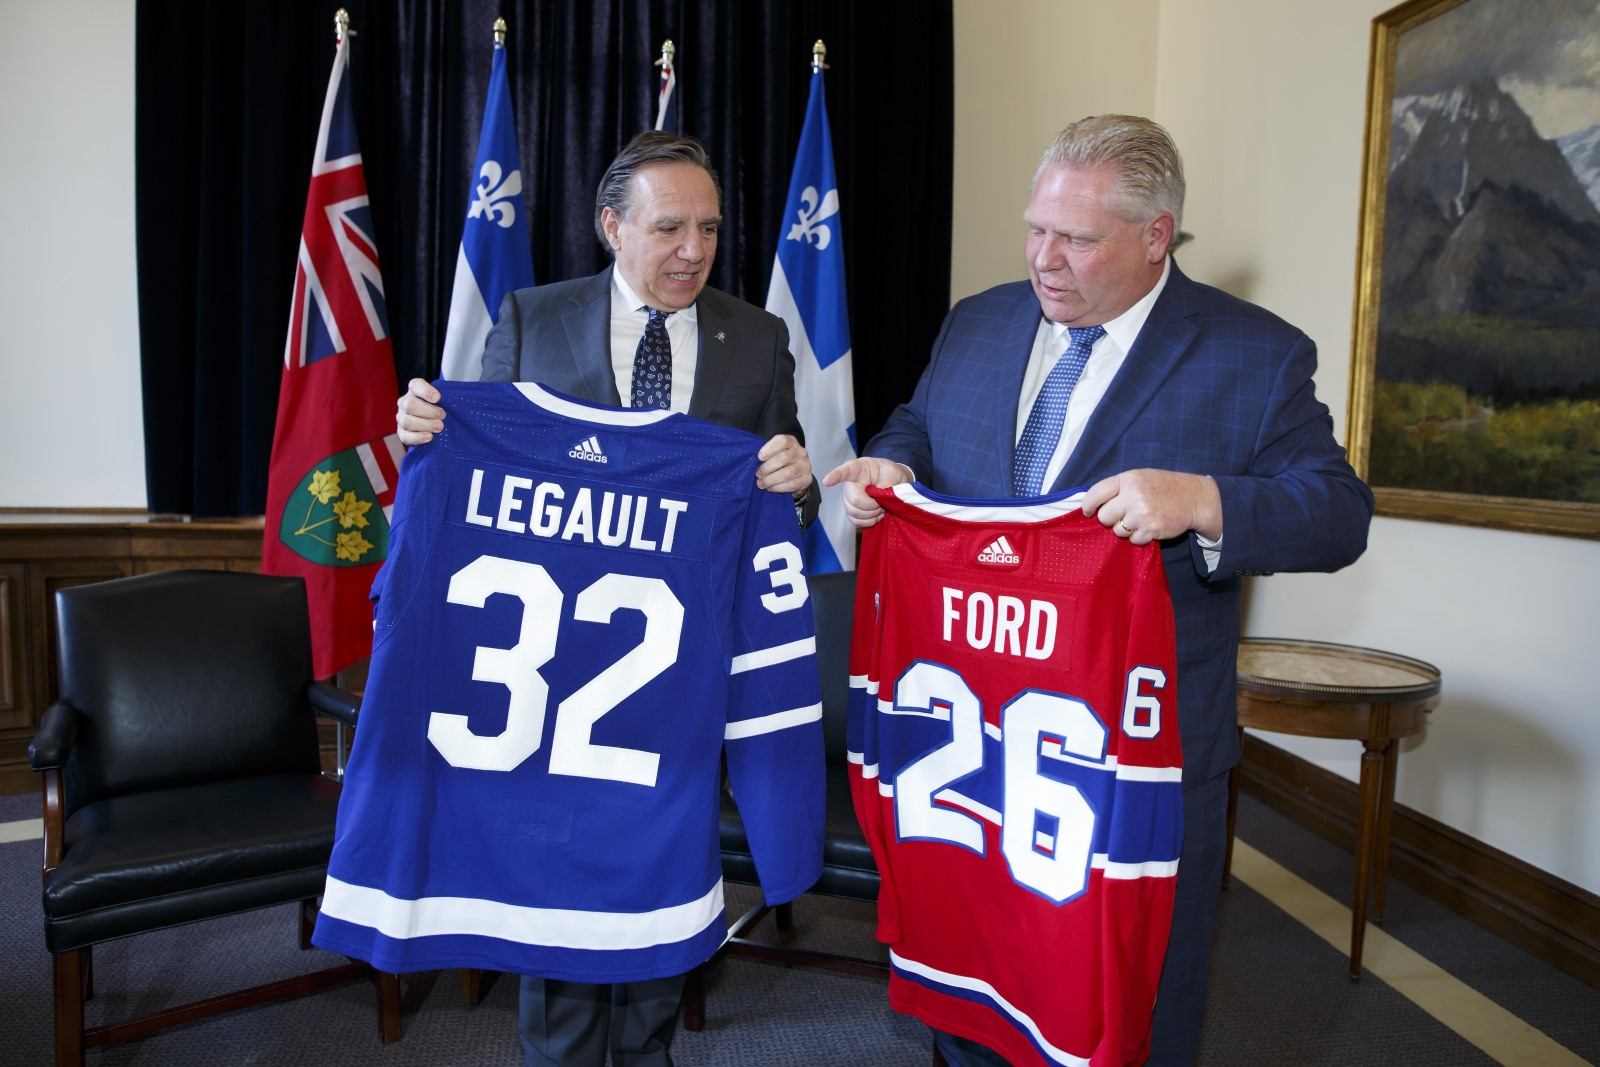 Legault and Ford with matching hockey jerseys